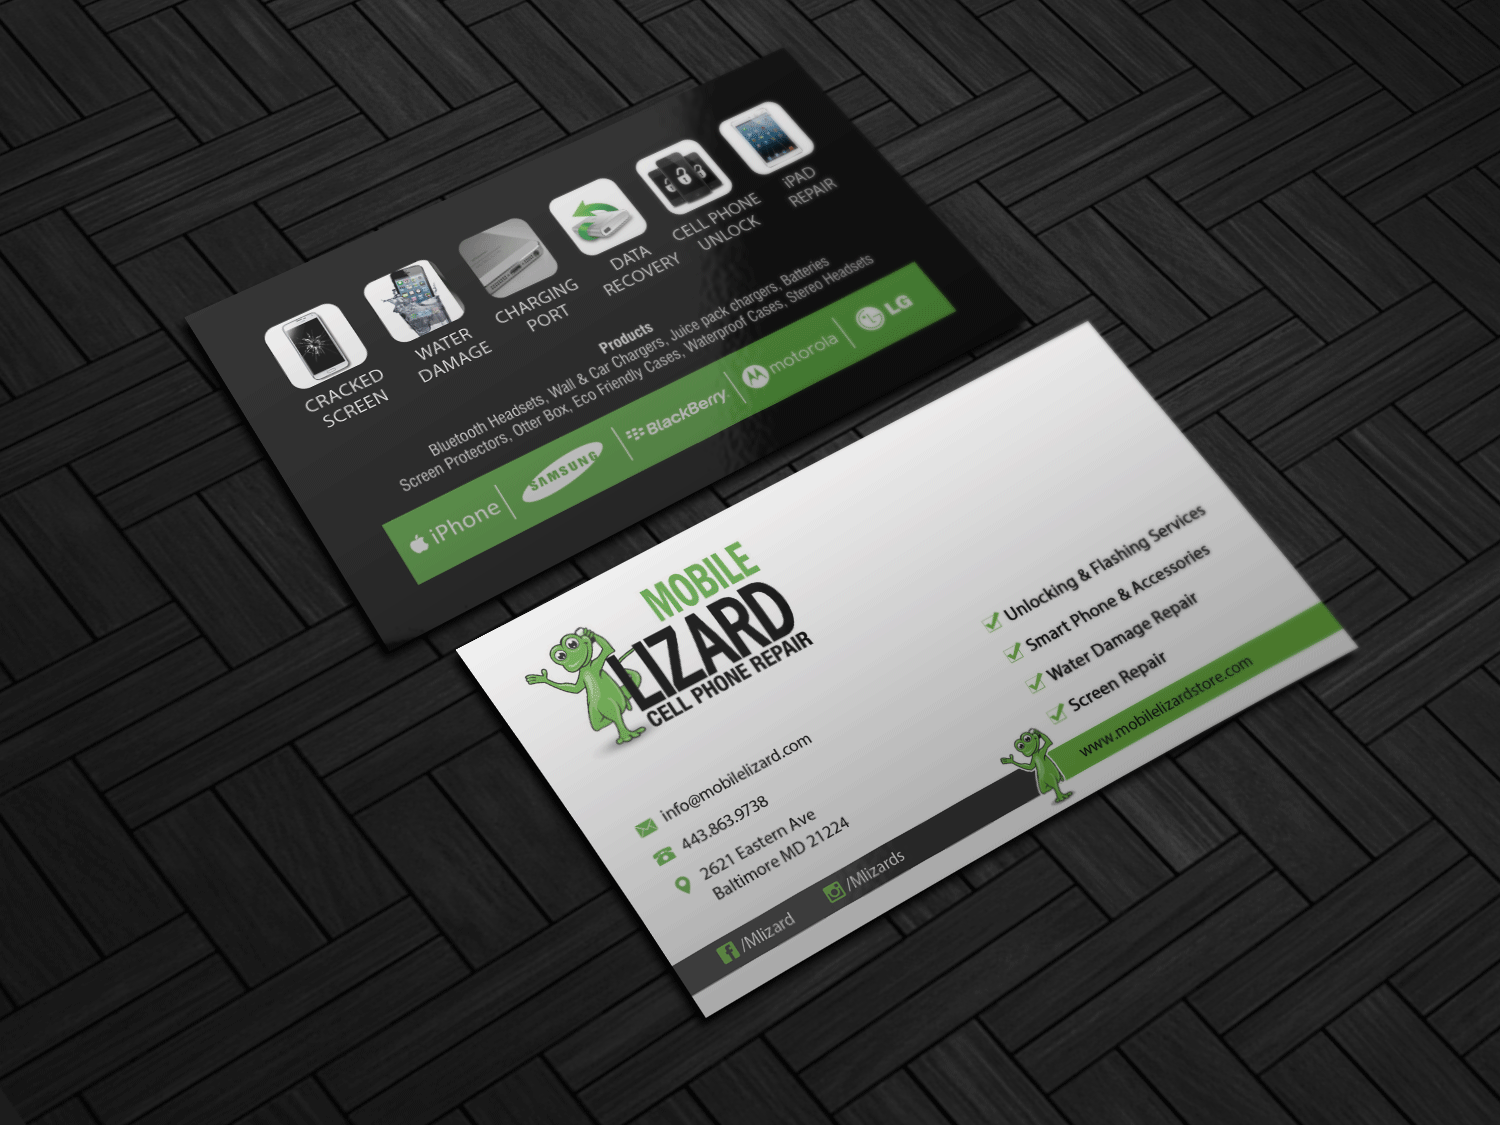 Modern upmarket cell phone business card design for carte blanche business card design by riz for carte blanche communications design 17420843 reheart Images